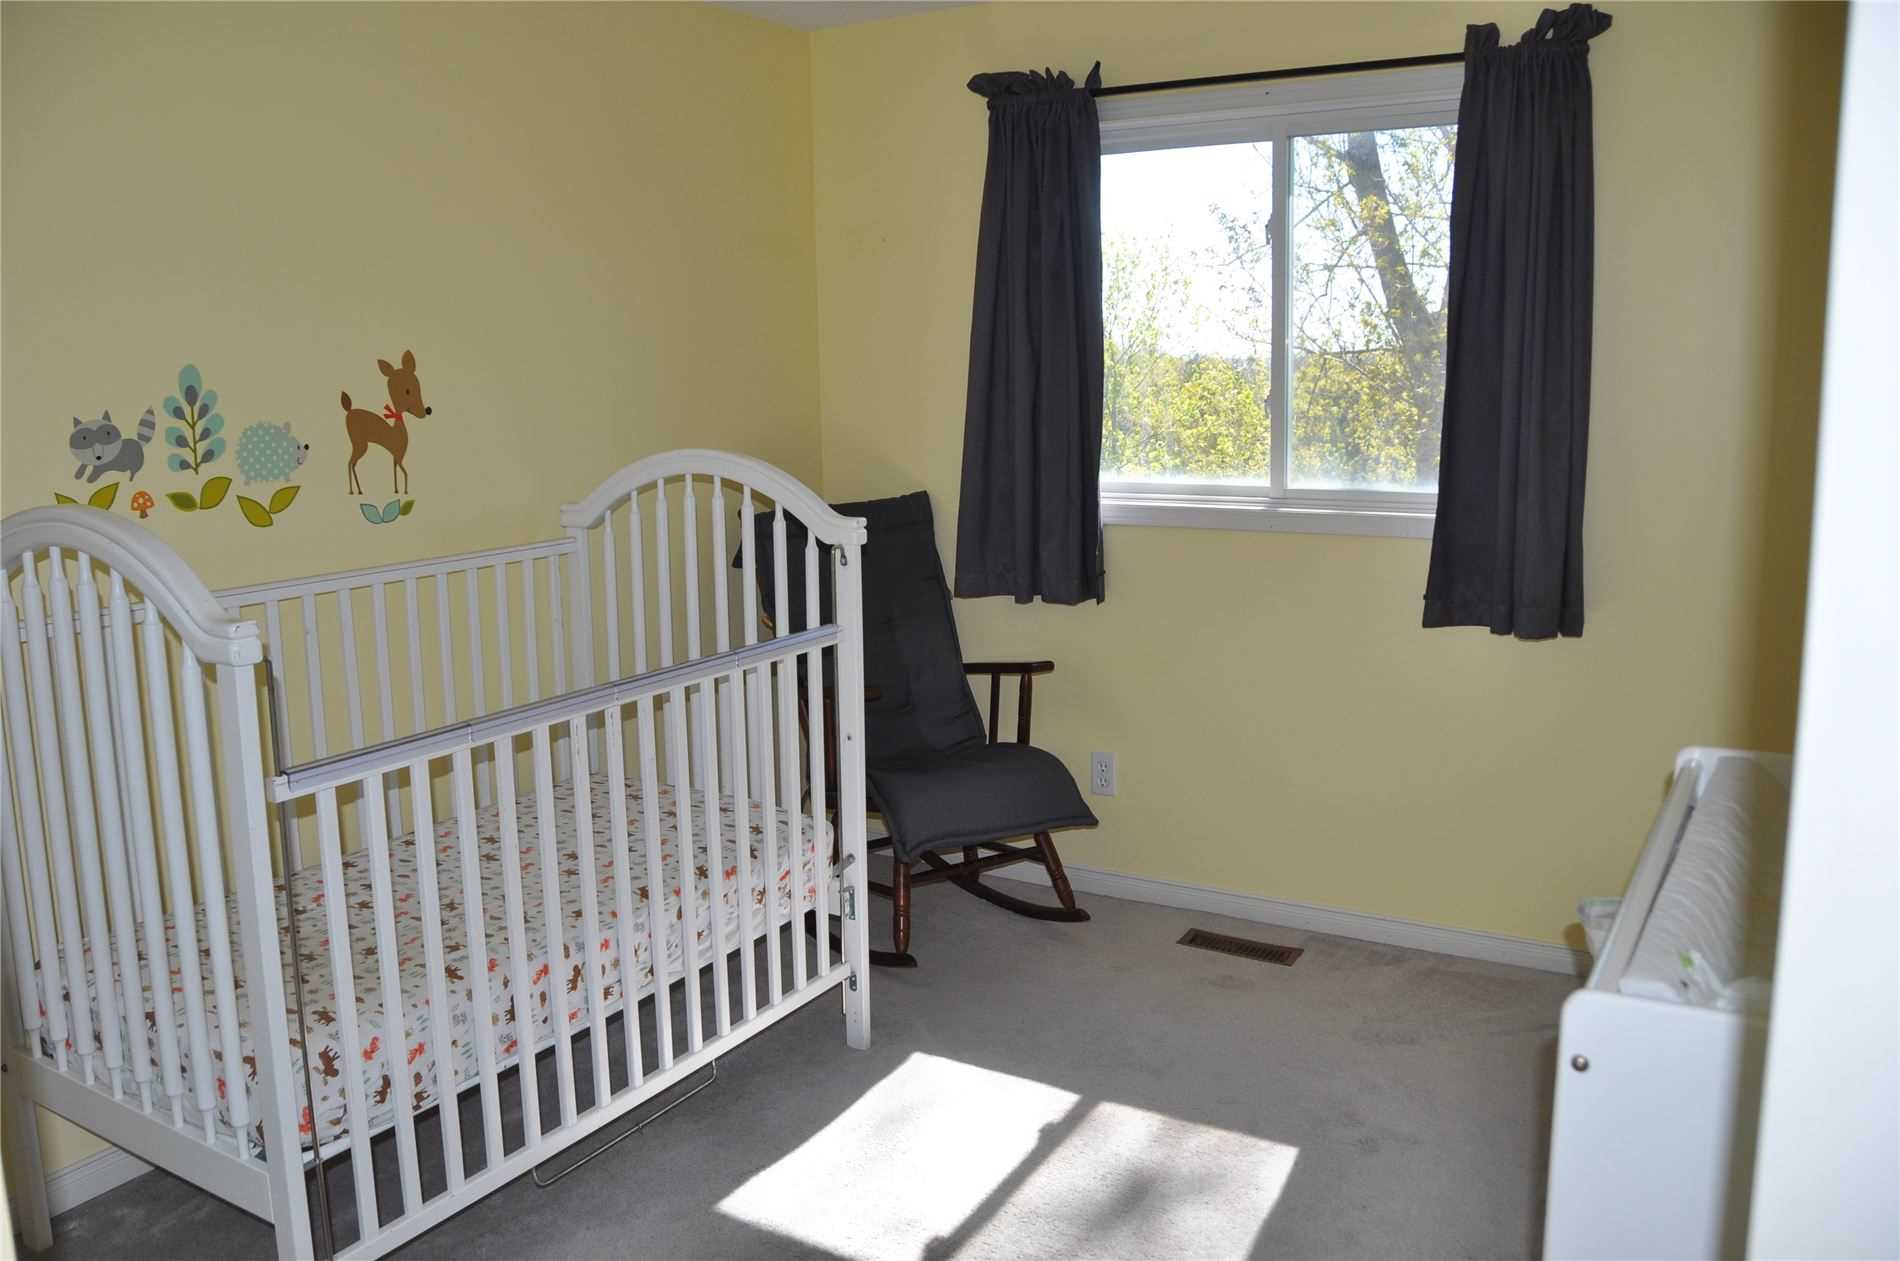 Image 2 of 12 showing inside of 3 Bedroom Condo Townhouse 2-Storey for Sale at 22 Macintyre Lane Unit# 11, Ajax L1T3X3